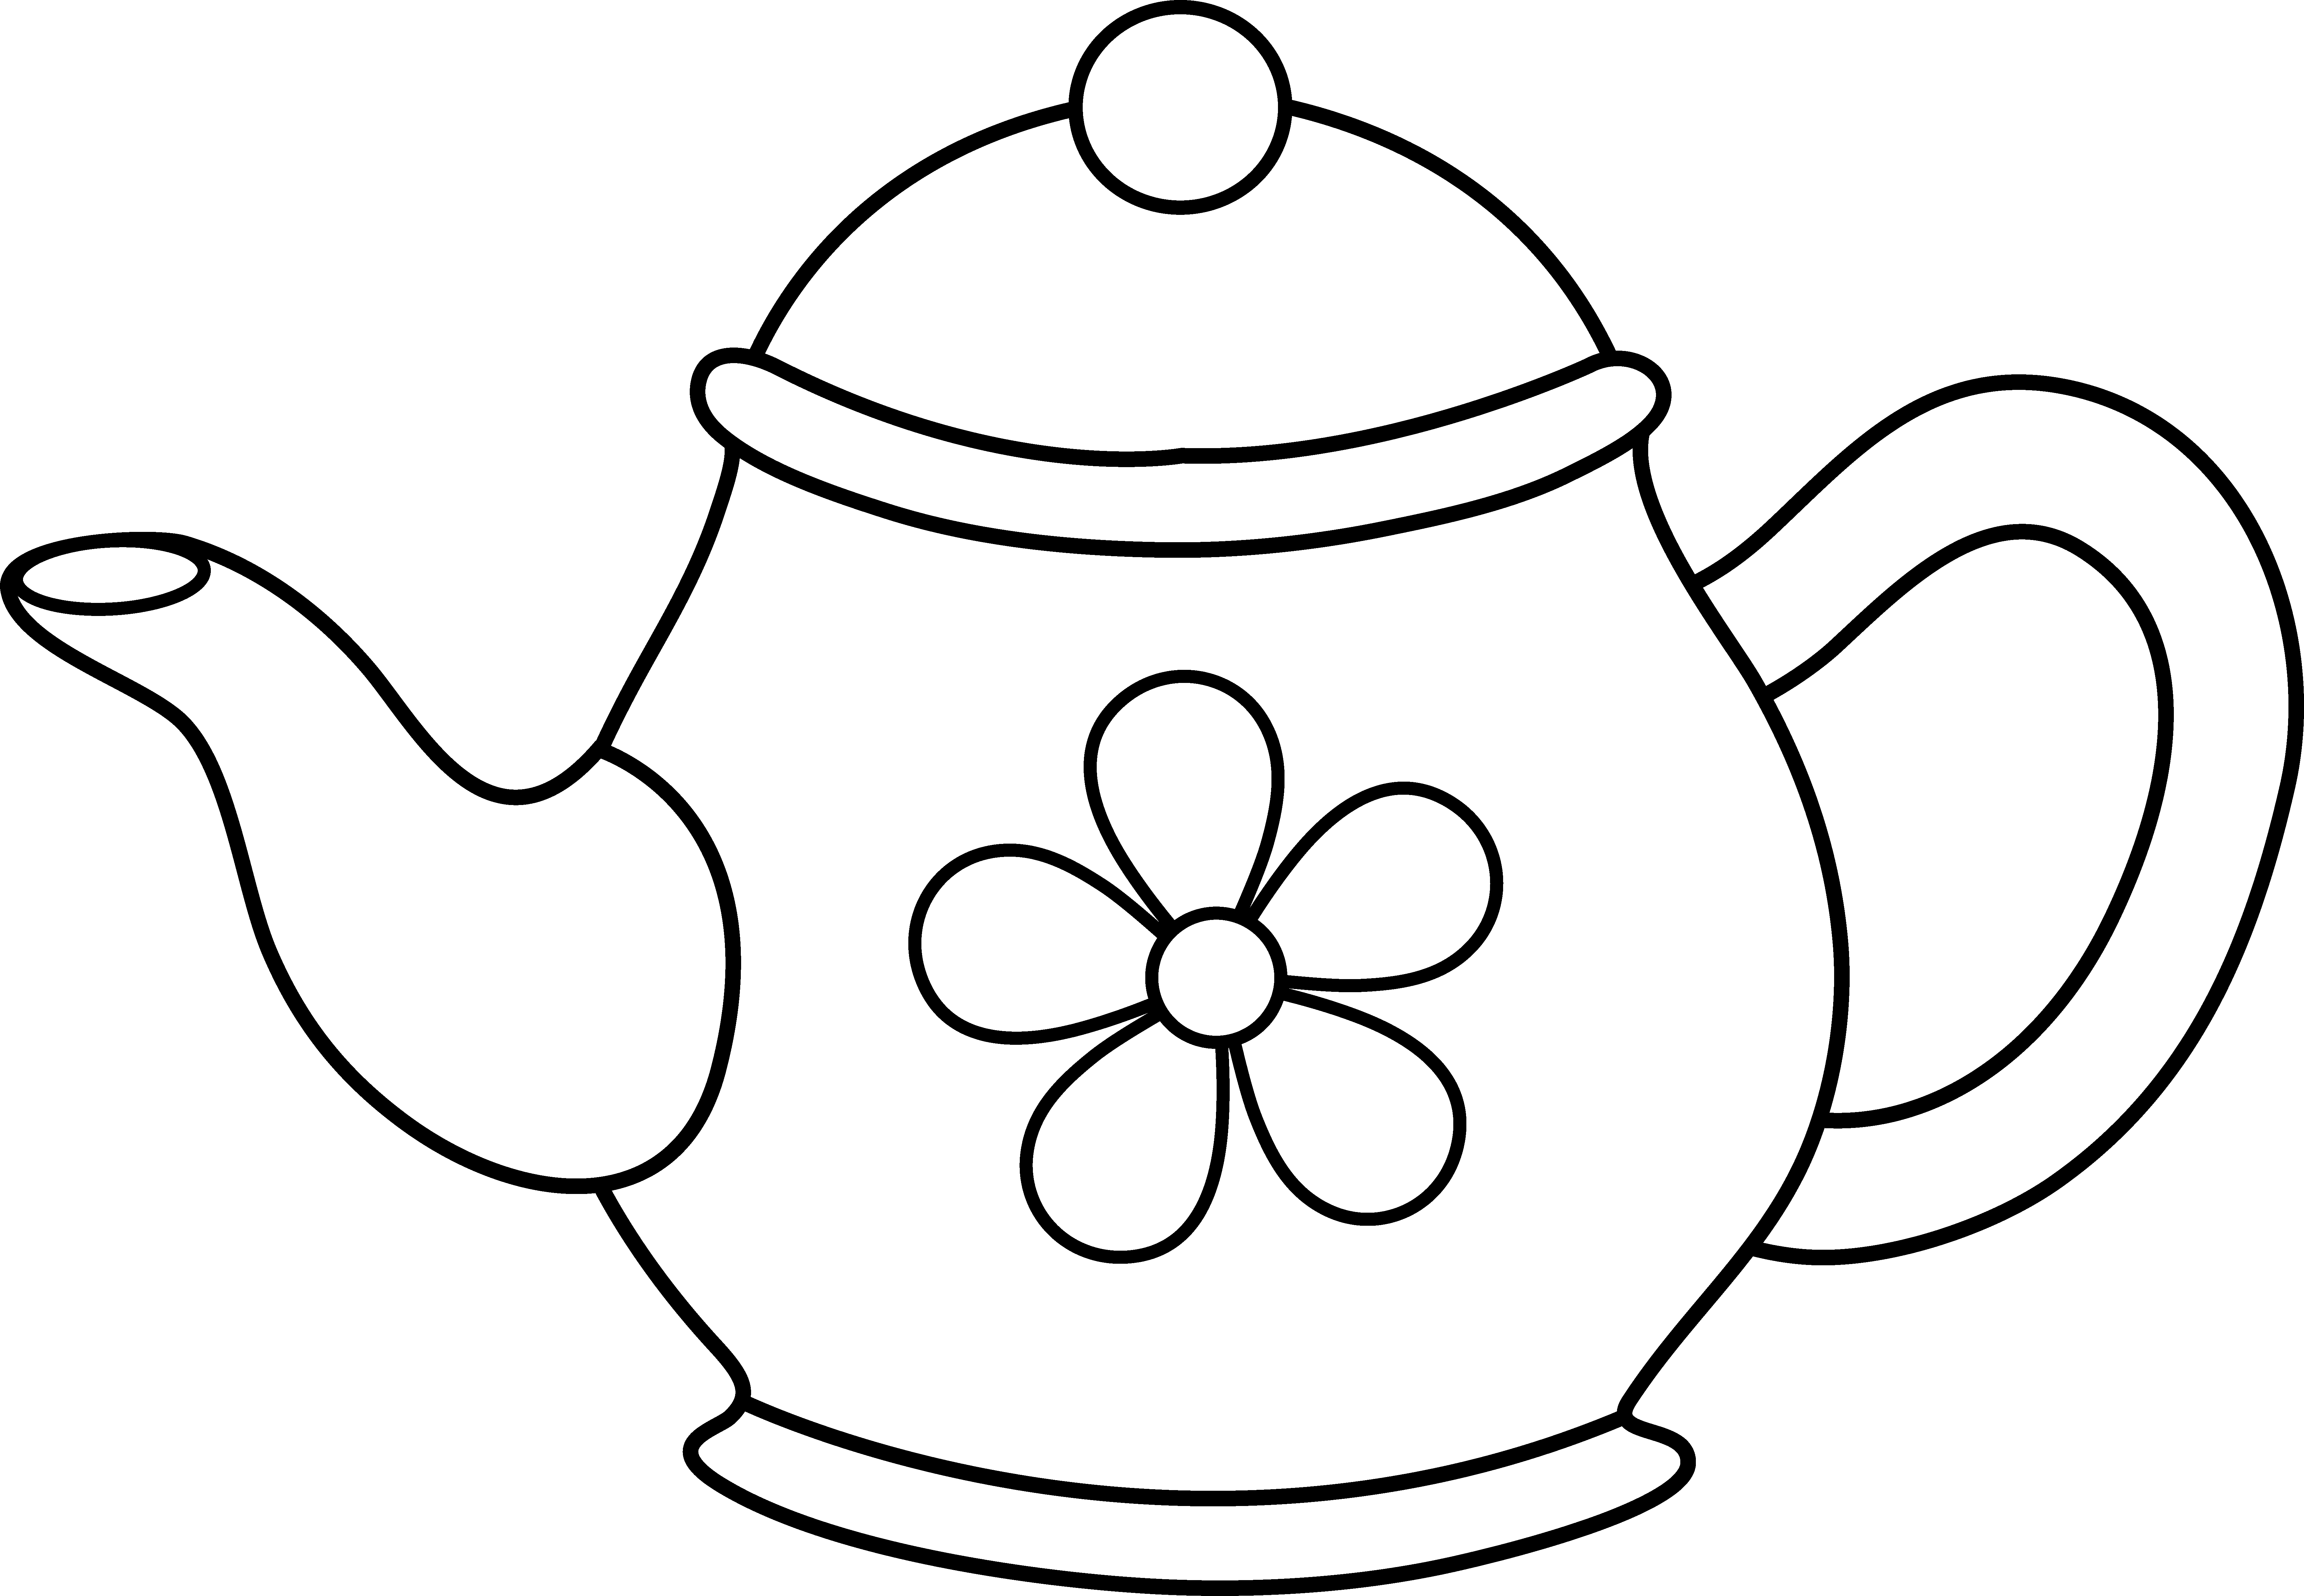 Cute flower clipart black and white clip library download Flower Pot Clipart Black And White | Clipart Panda - Free Clipart Images clip library download